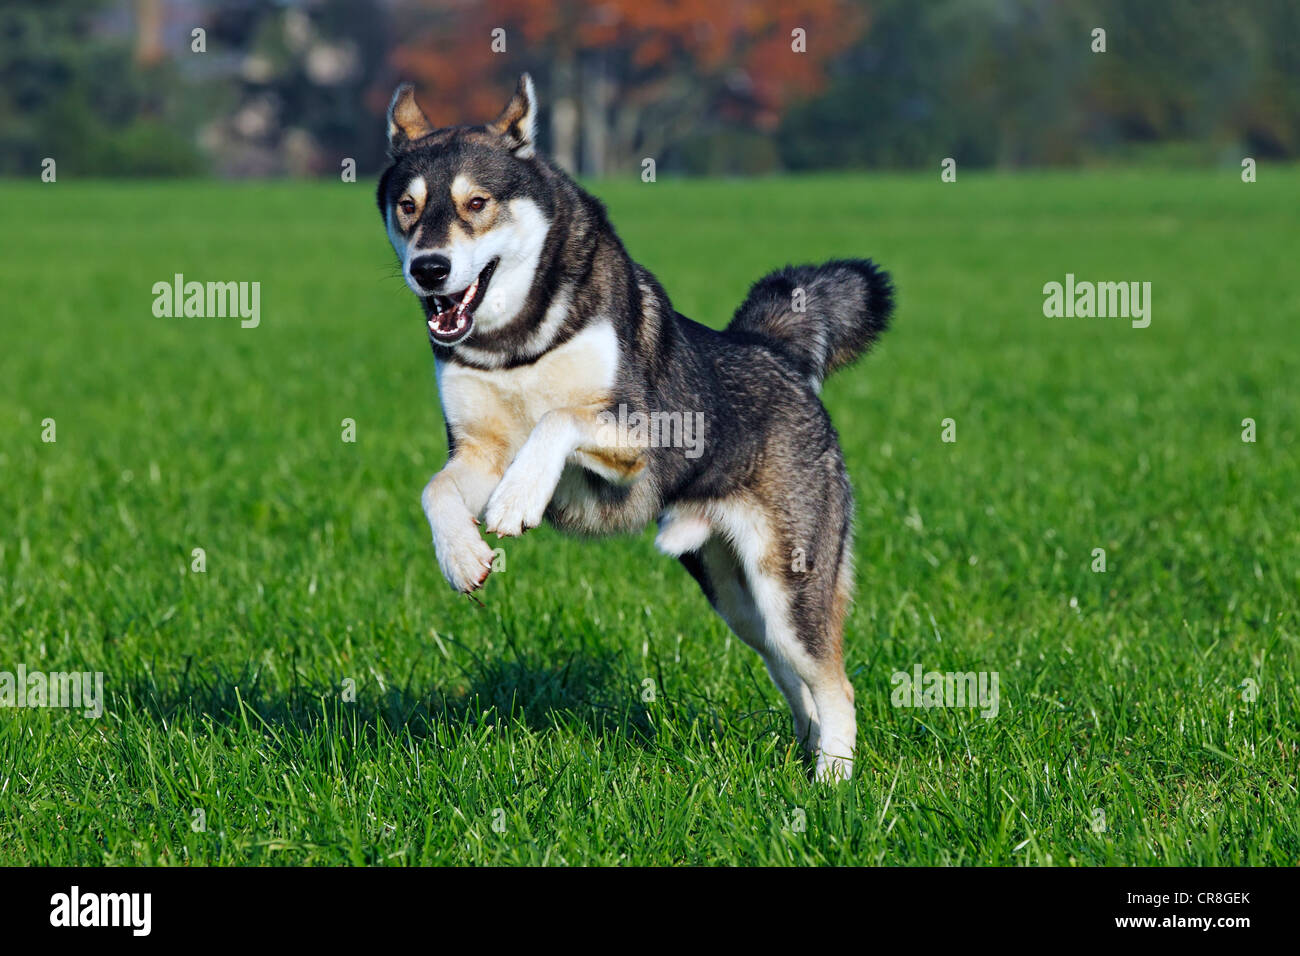 Running young Siberian Husky dog (Canis lupus familiaris) male, domestic dog - Stock Image